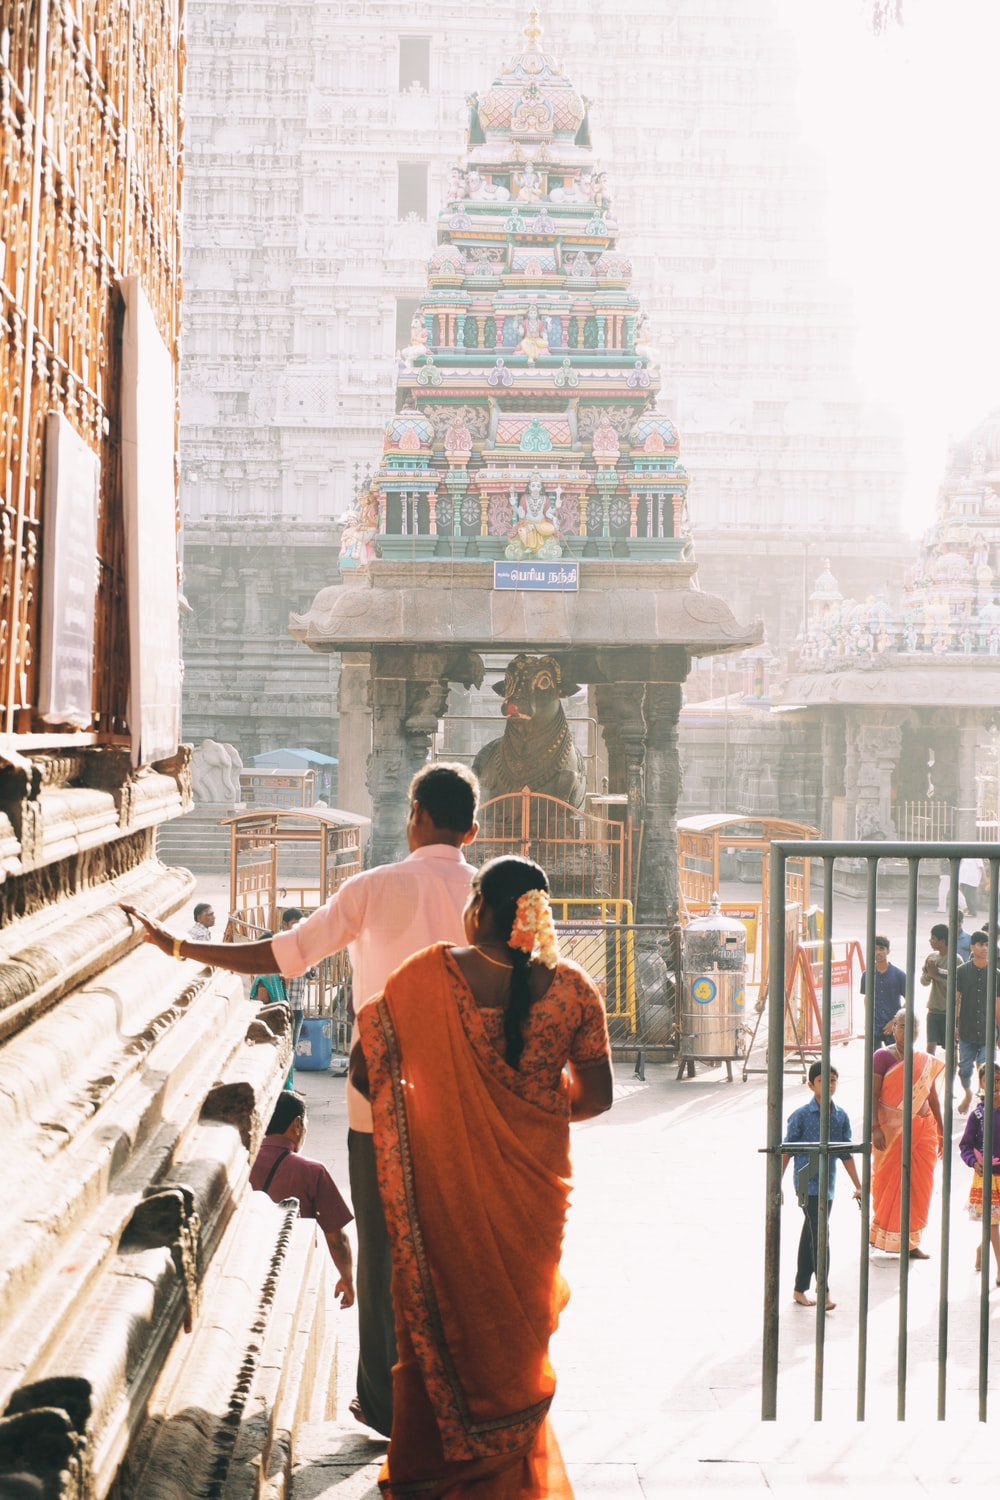 people near temple during daytime